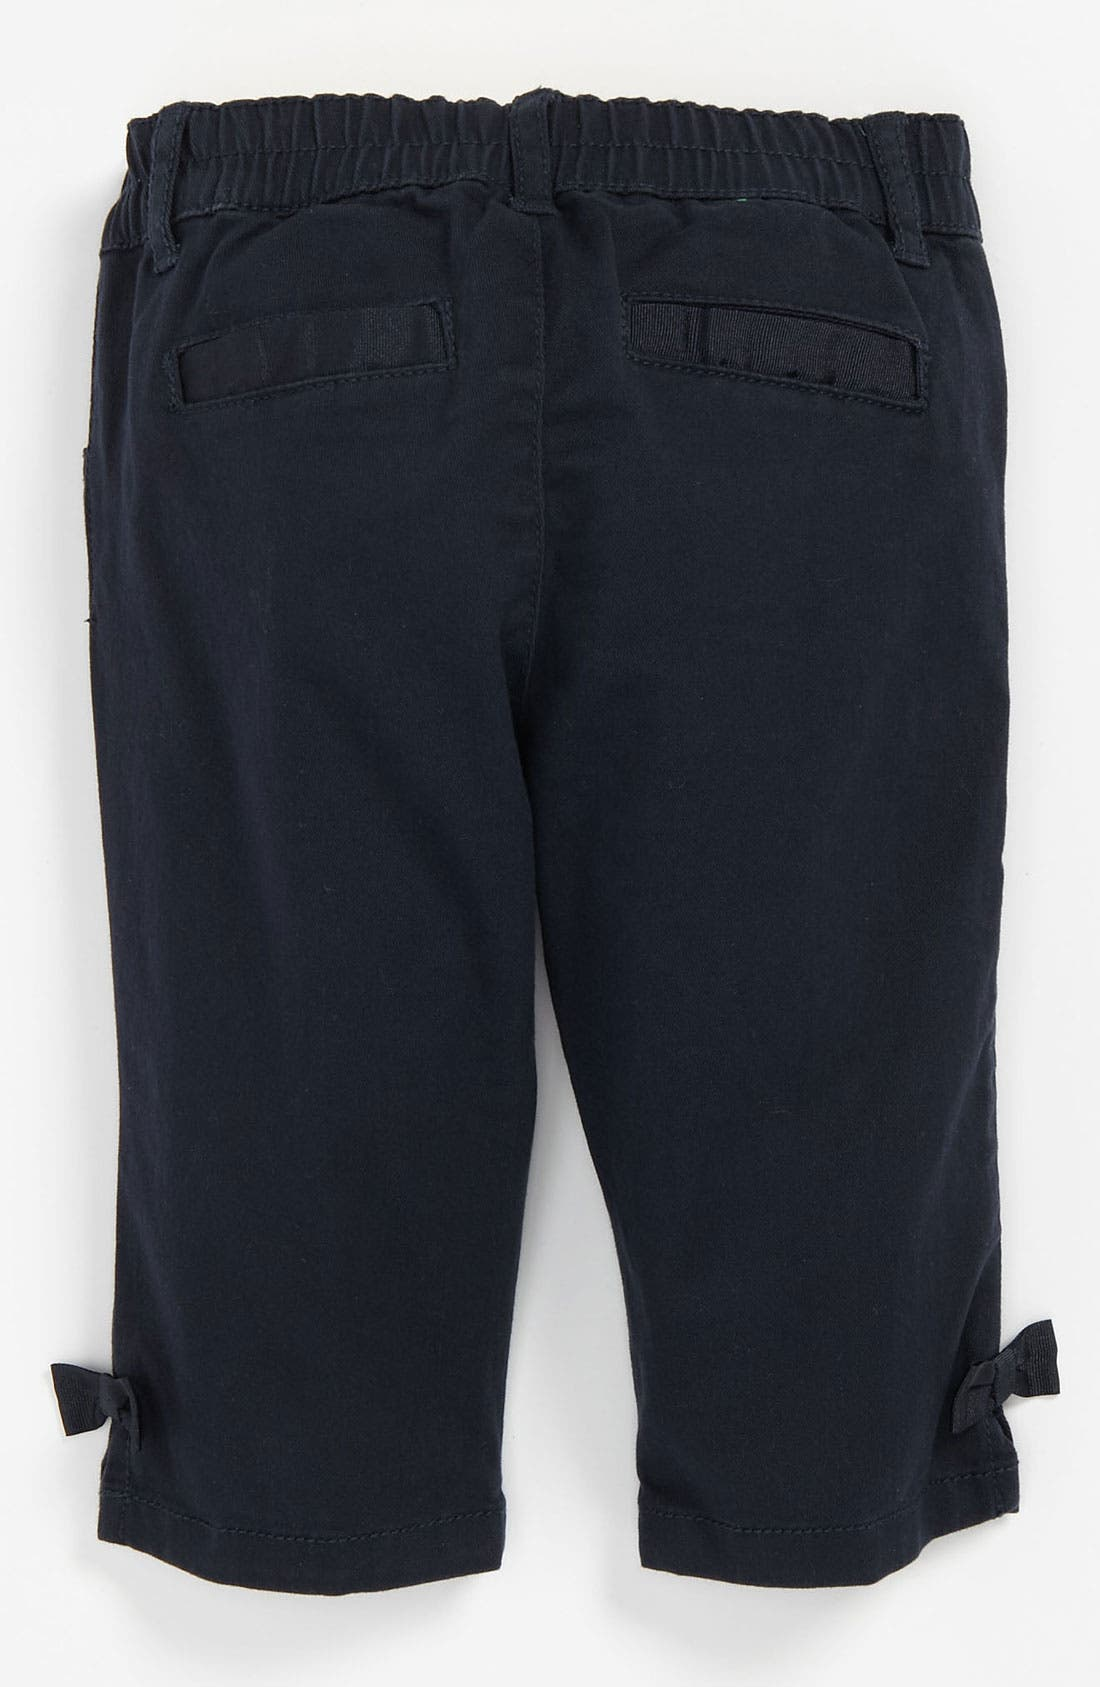 Alternate Image 1 Selected - United Colors of Benetton Kids Pants (Toddler)